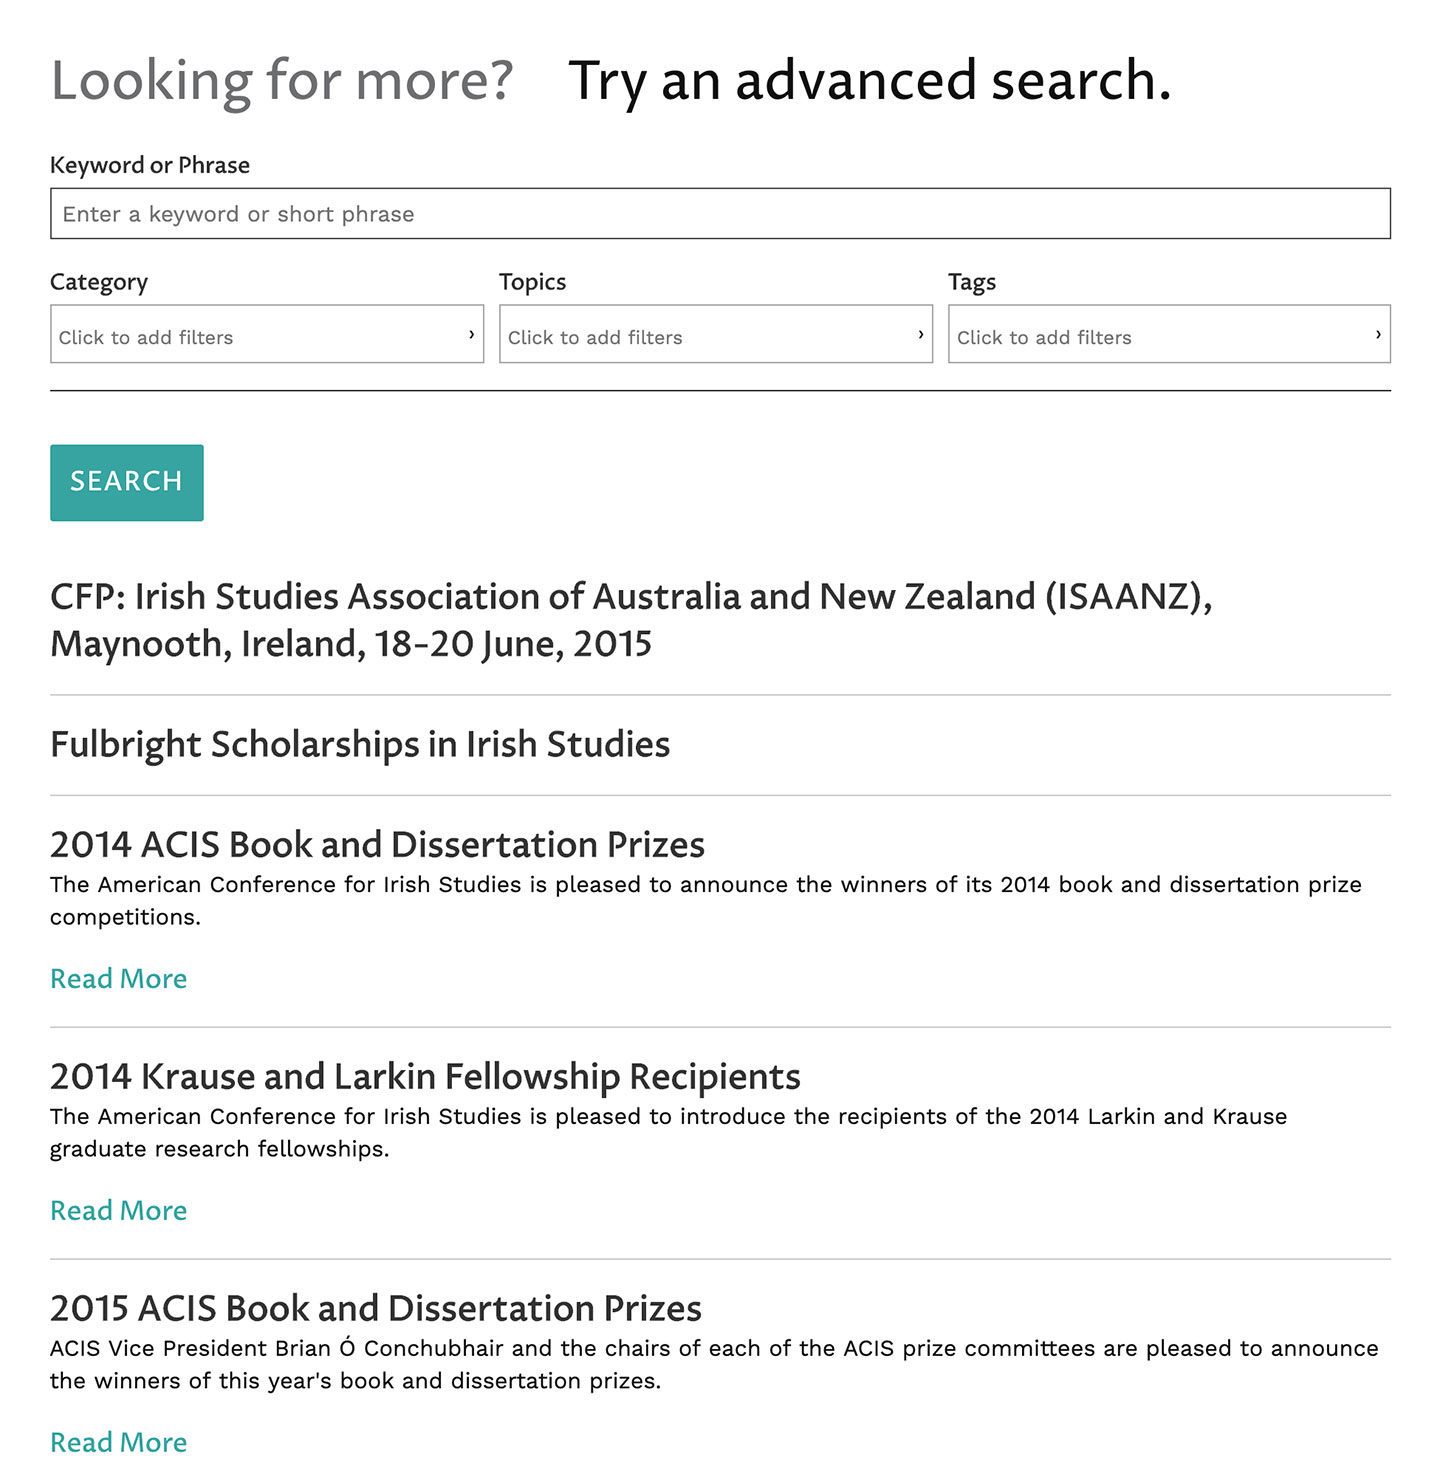 American Conference for Irish Studies (ACIS): ACIS: Advanced Conference Search